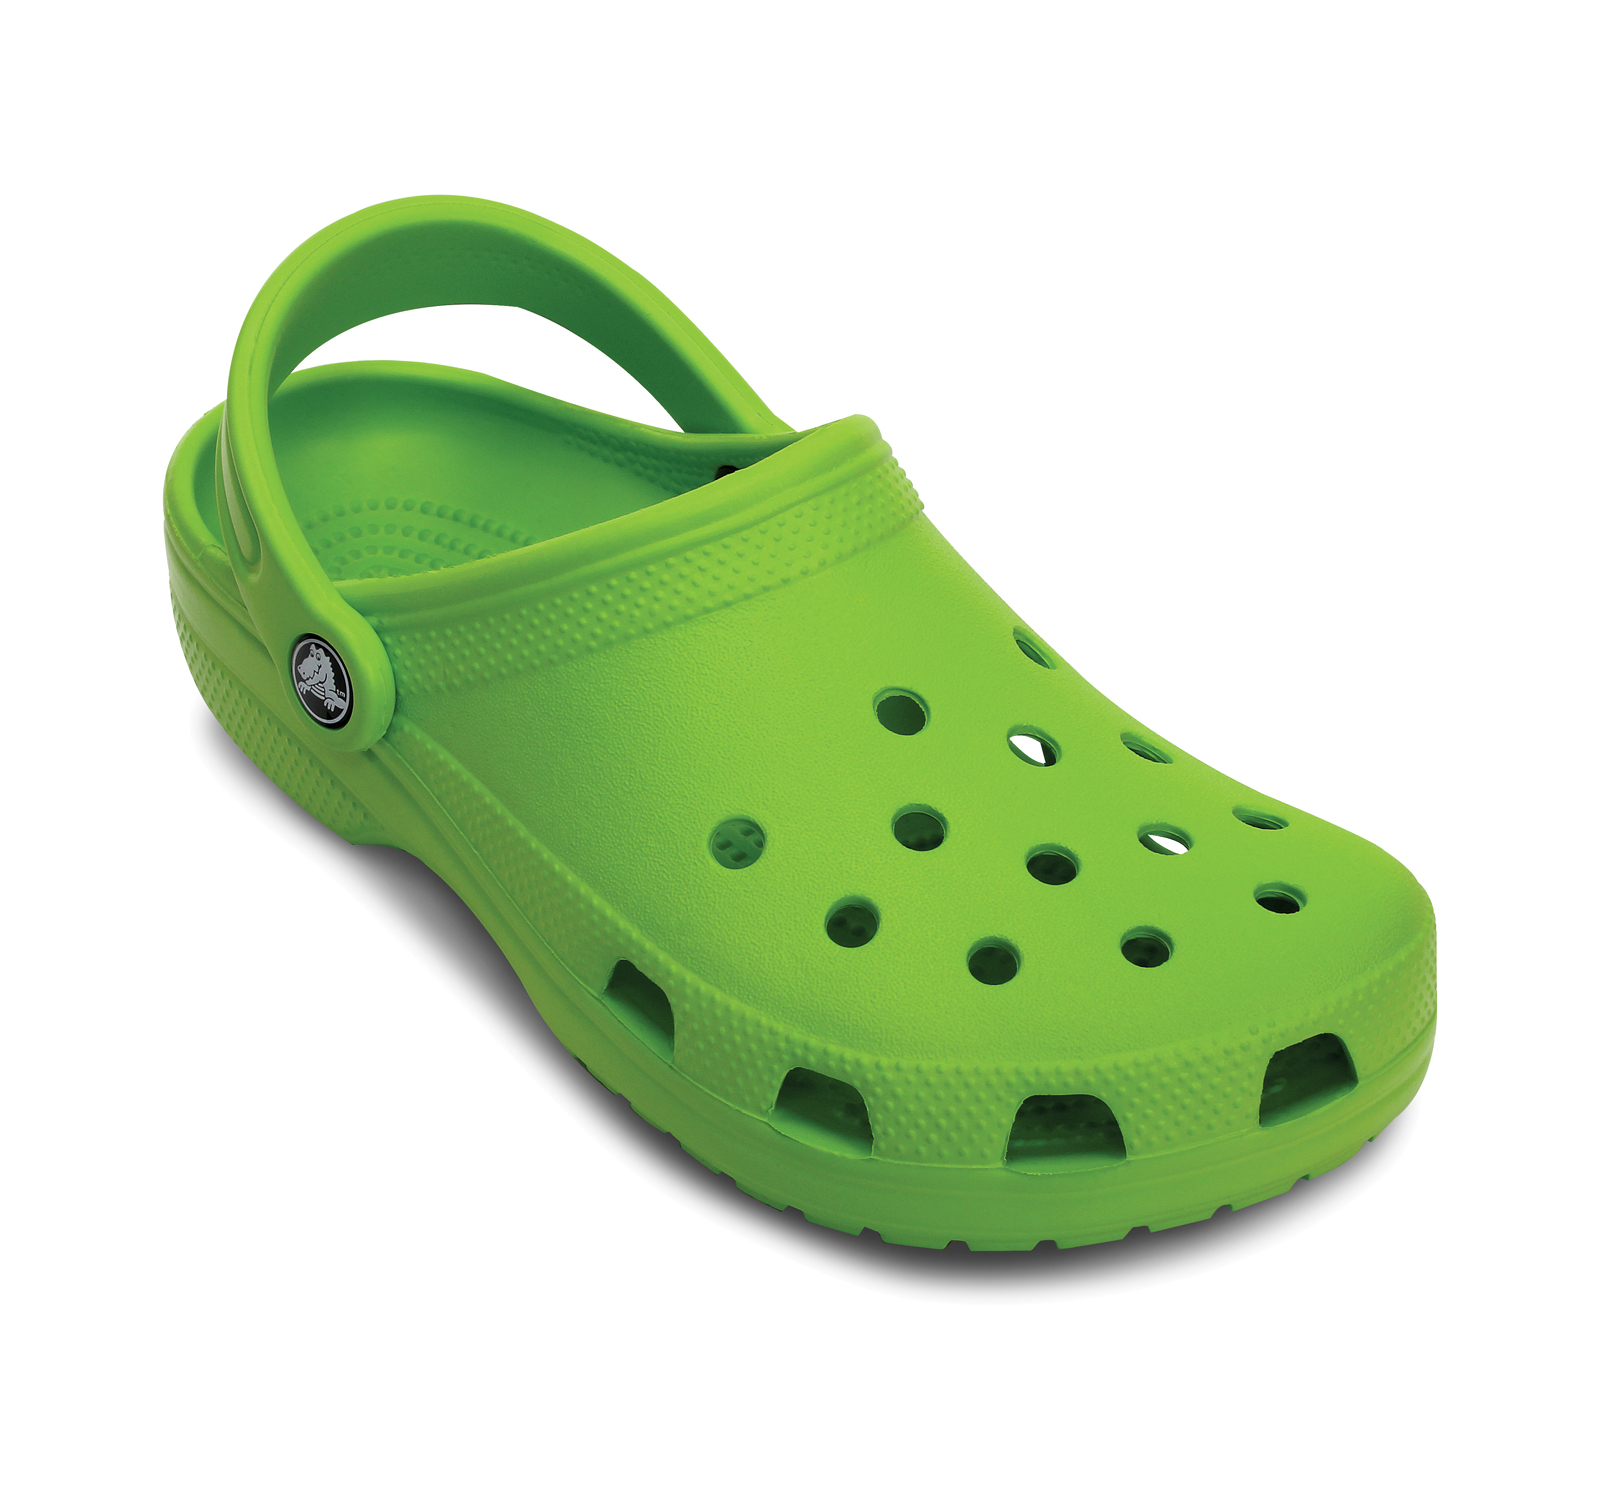 Product Features Crocs Lock slip-resistant tread and enclosed toes help protect foot Explore Amazon Devices · Shop Our Huge Selection · Fast Shipping · Read Ratings & ReviewsBrands: Crocs, Amoji, CROC, Realtree and more.